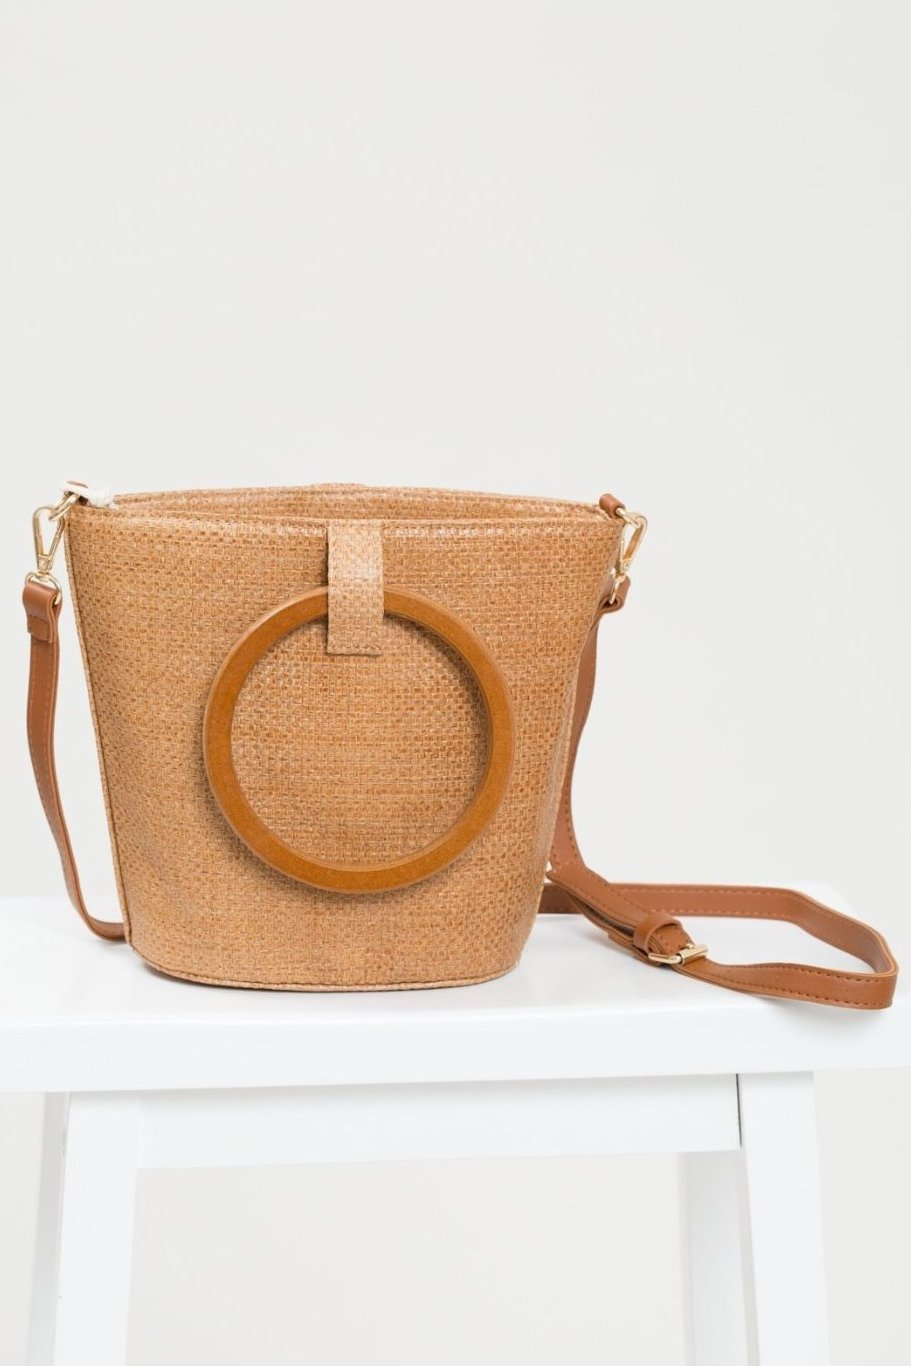 Straw Bucket Bag with Wooden Handle - Geegeebae